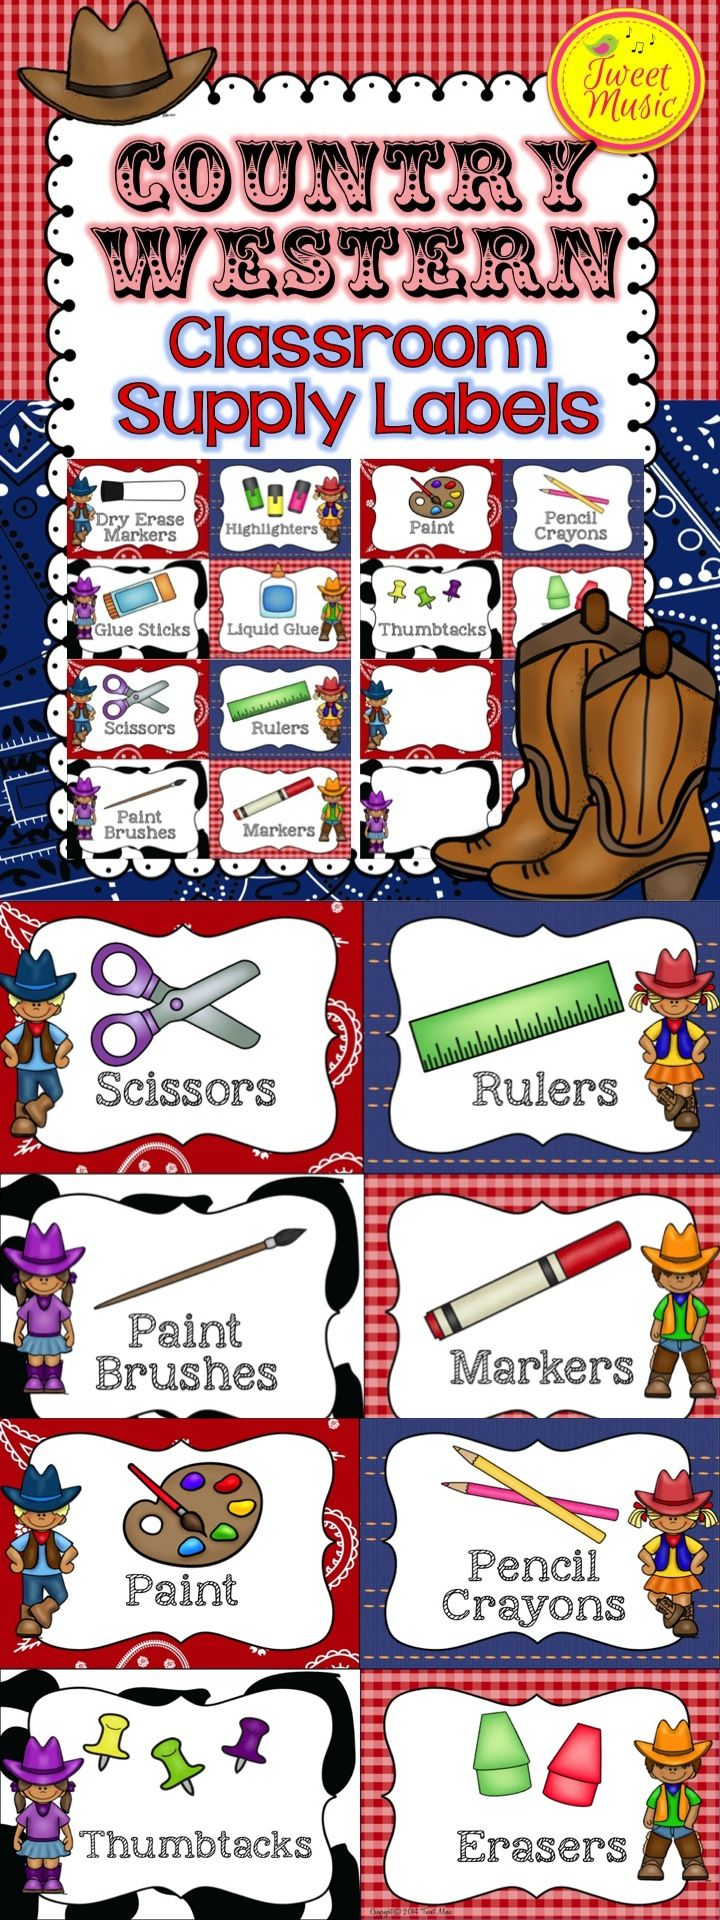 Yeehaw! Decorate your classroom this year with this adorable Country Western themed decor. Editable options included! This bundled set is sold individually and as part of a bundled set. $